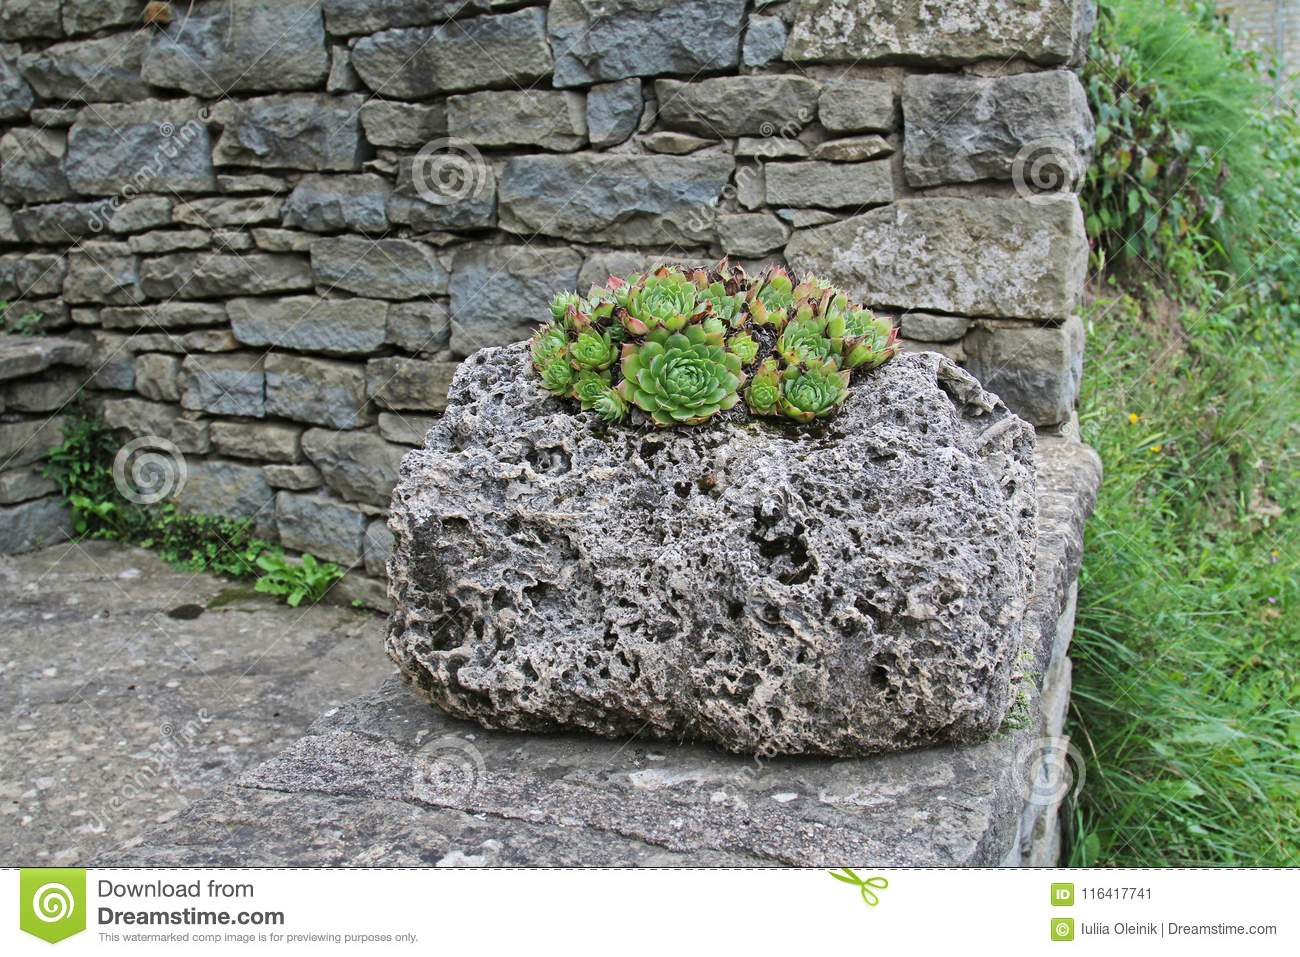 Small Succulents Growing On The Stone Rock Outdoors Stock Image Image Of Foliage Countryside 116417741